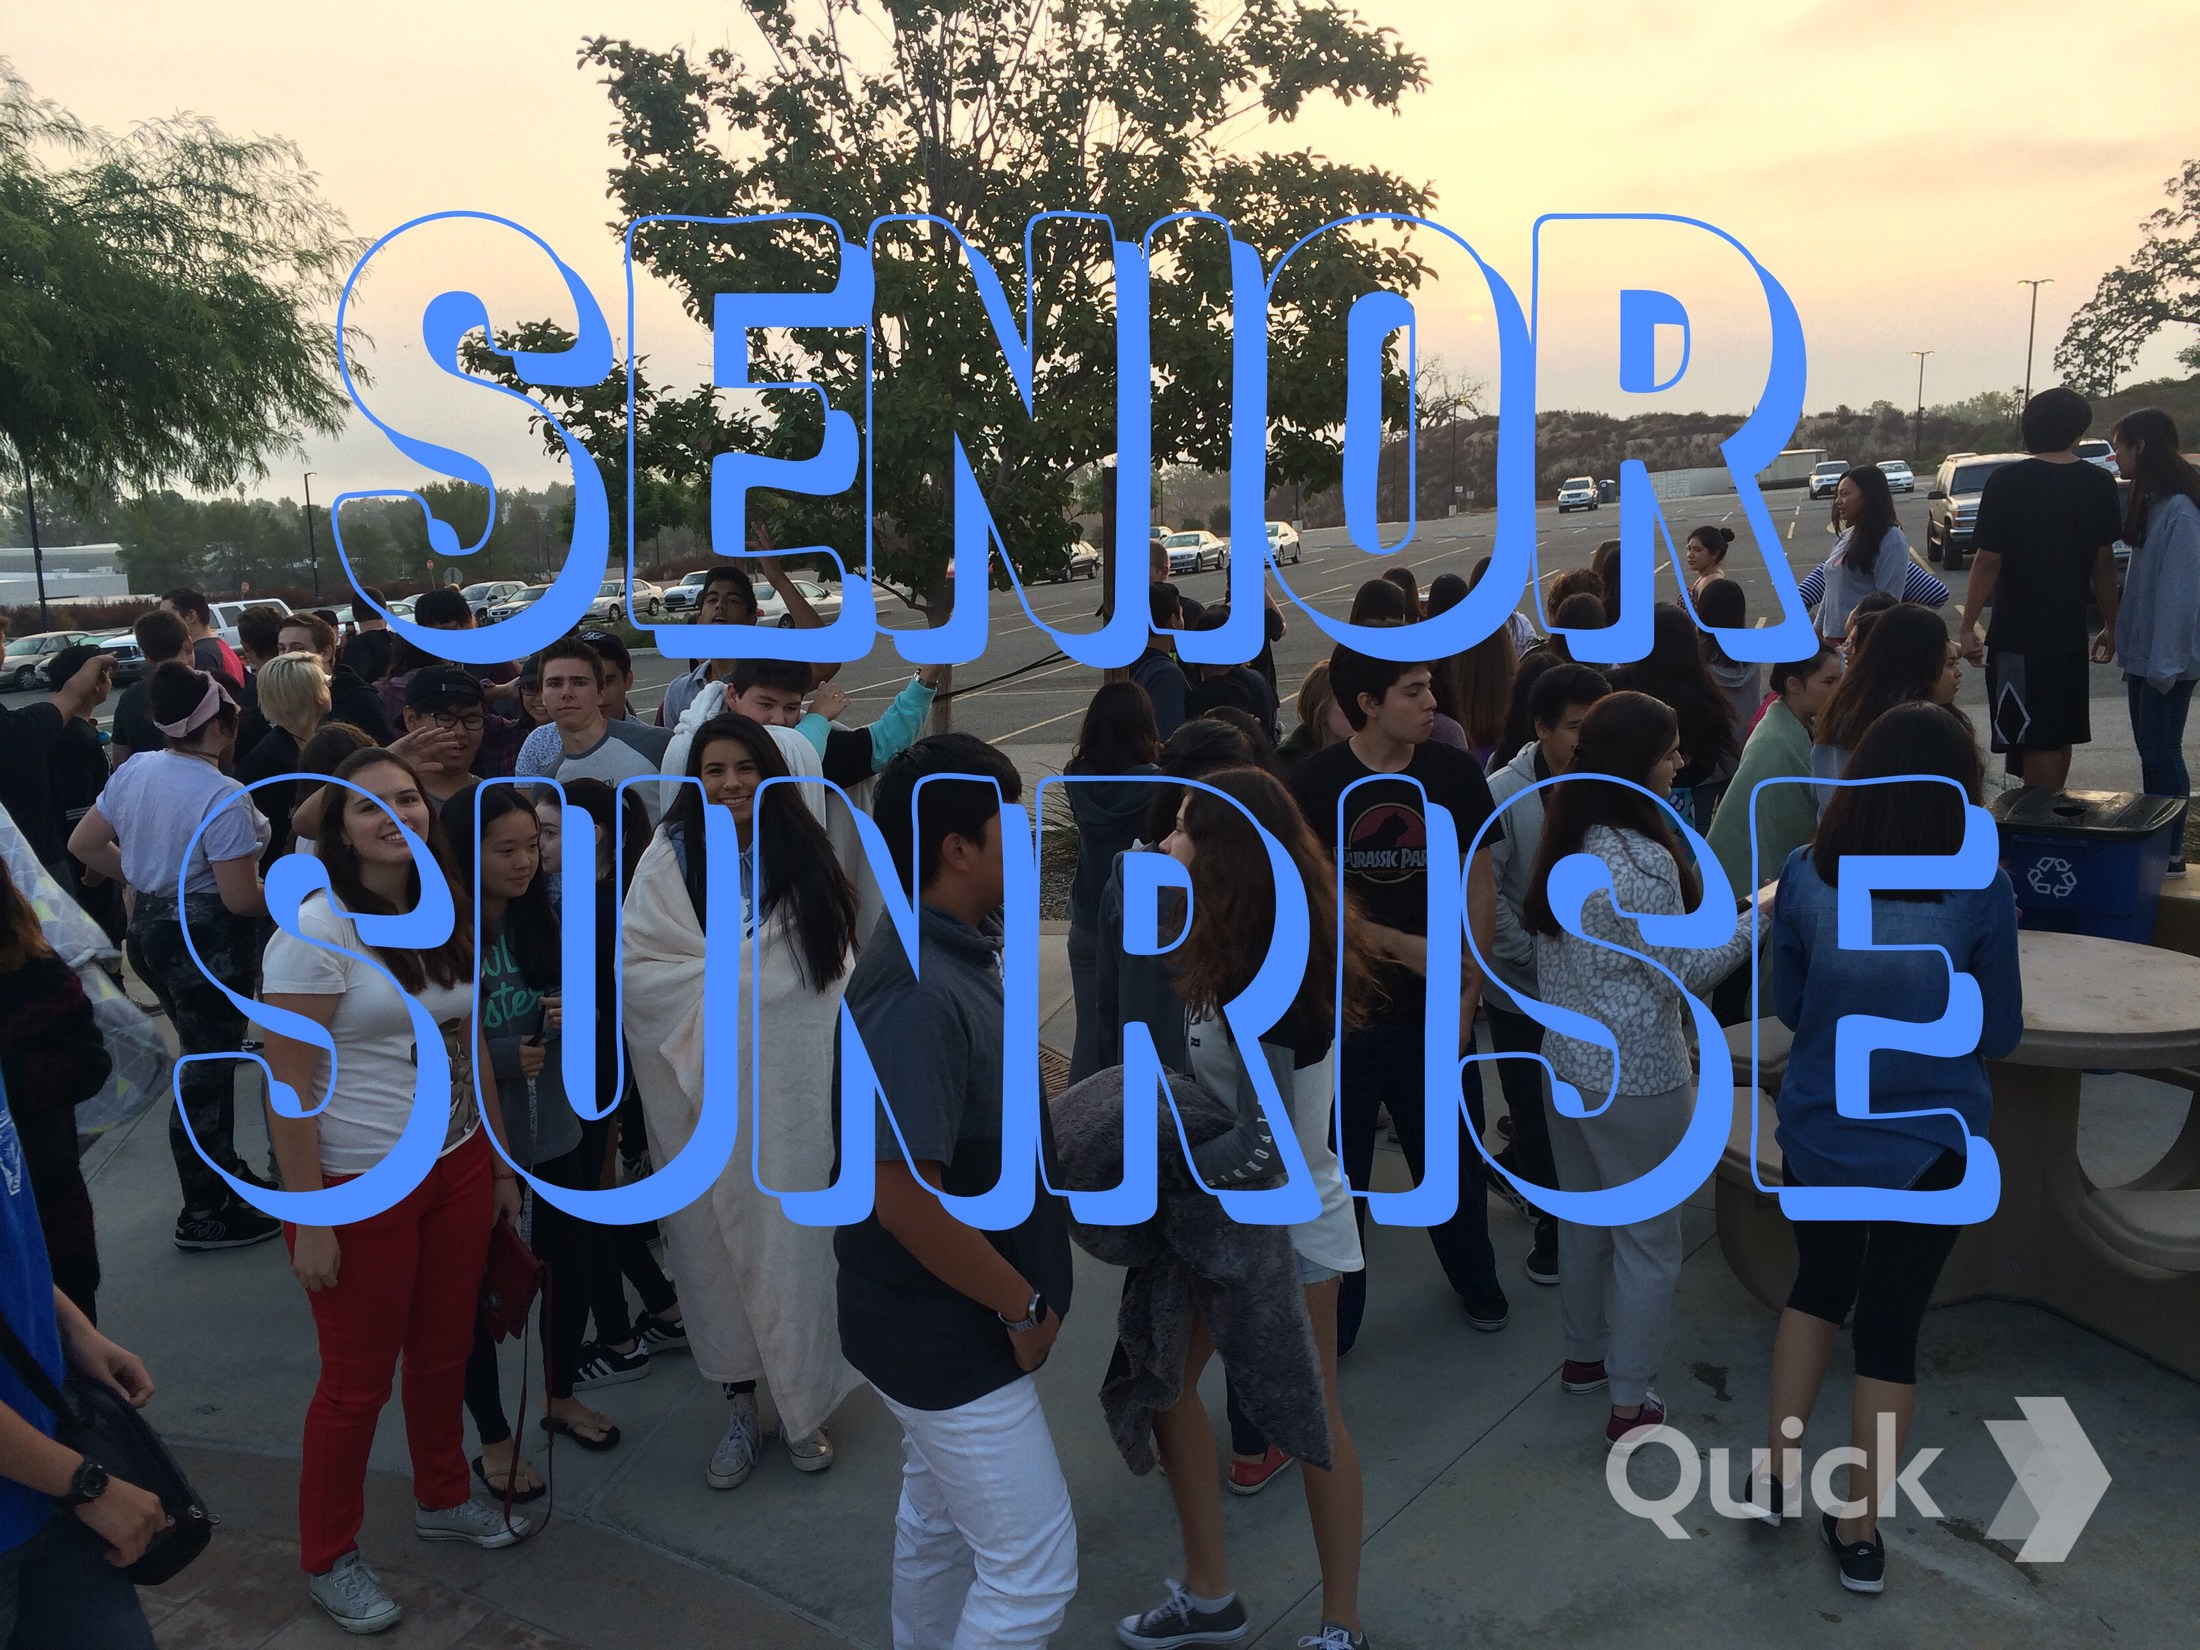 Seniors at the Senior Sunrise